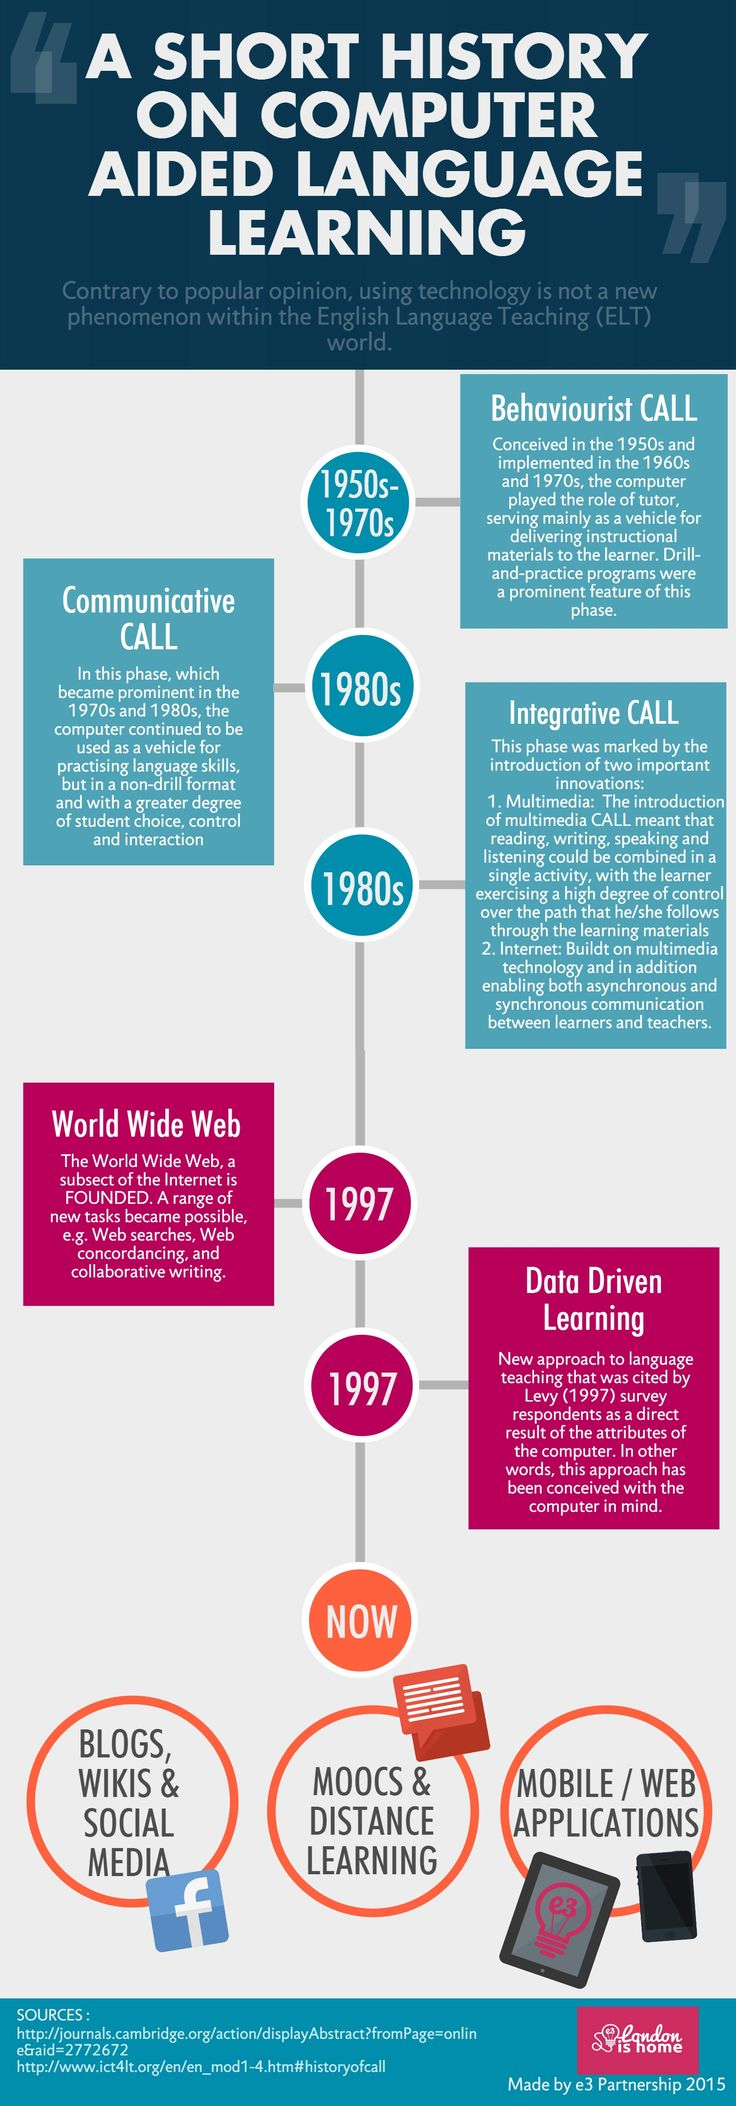 best ideas about history of computing computers history of computer aided language learning infographic elearninginfographics com